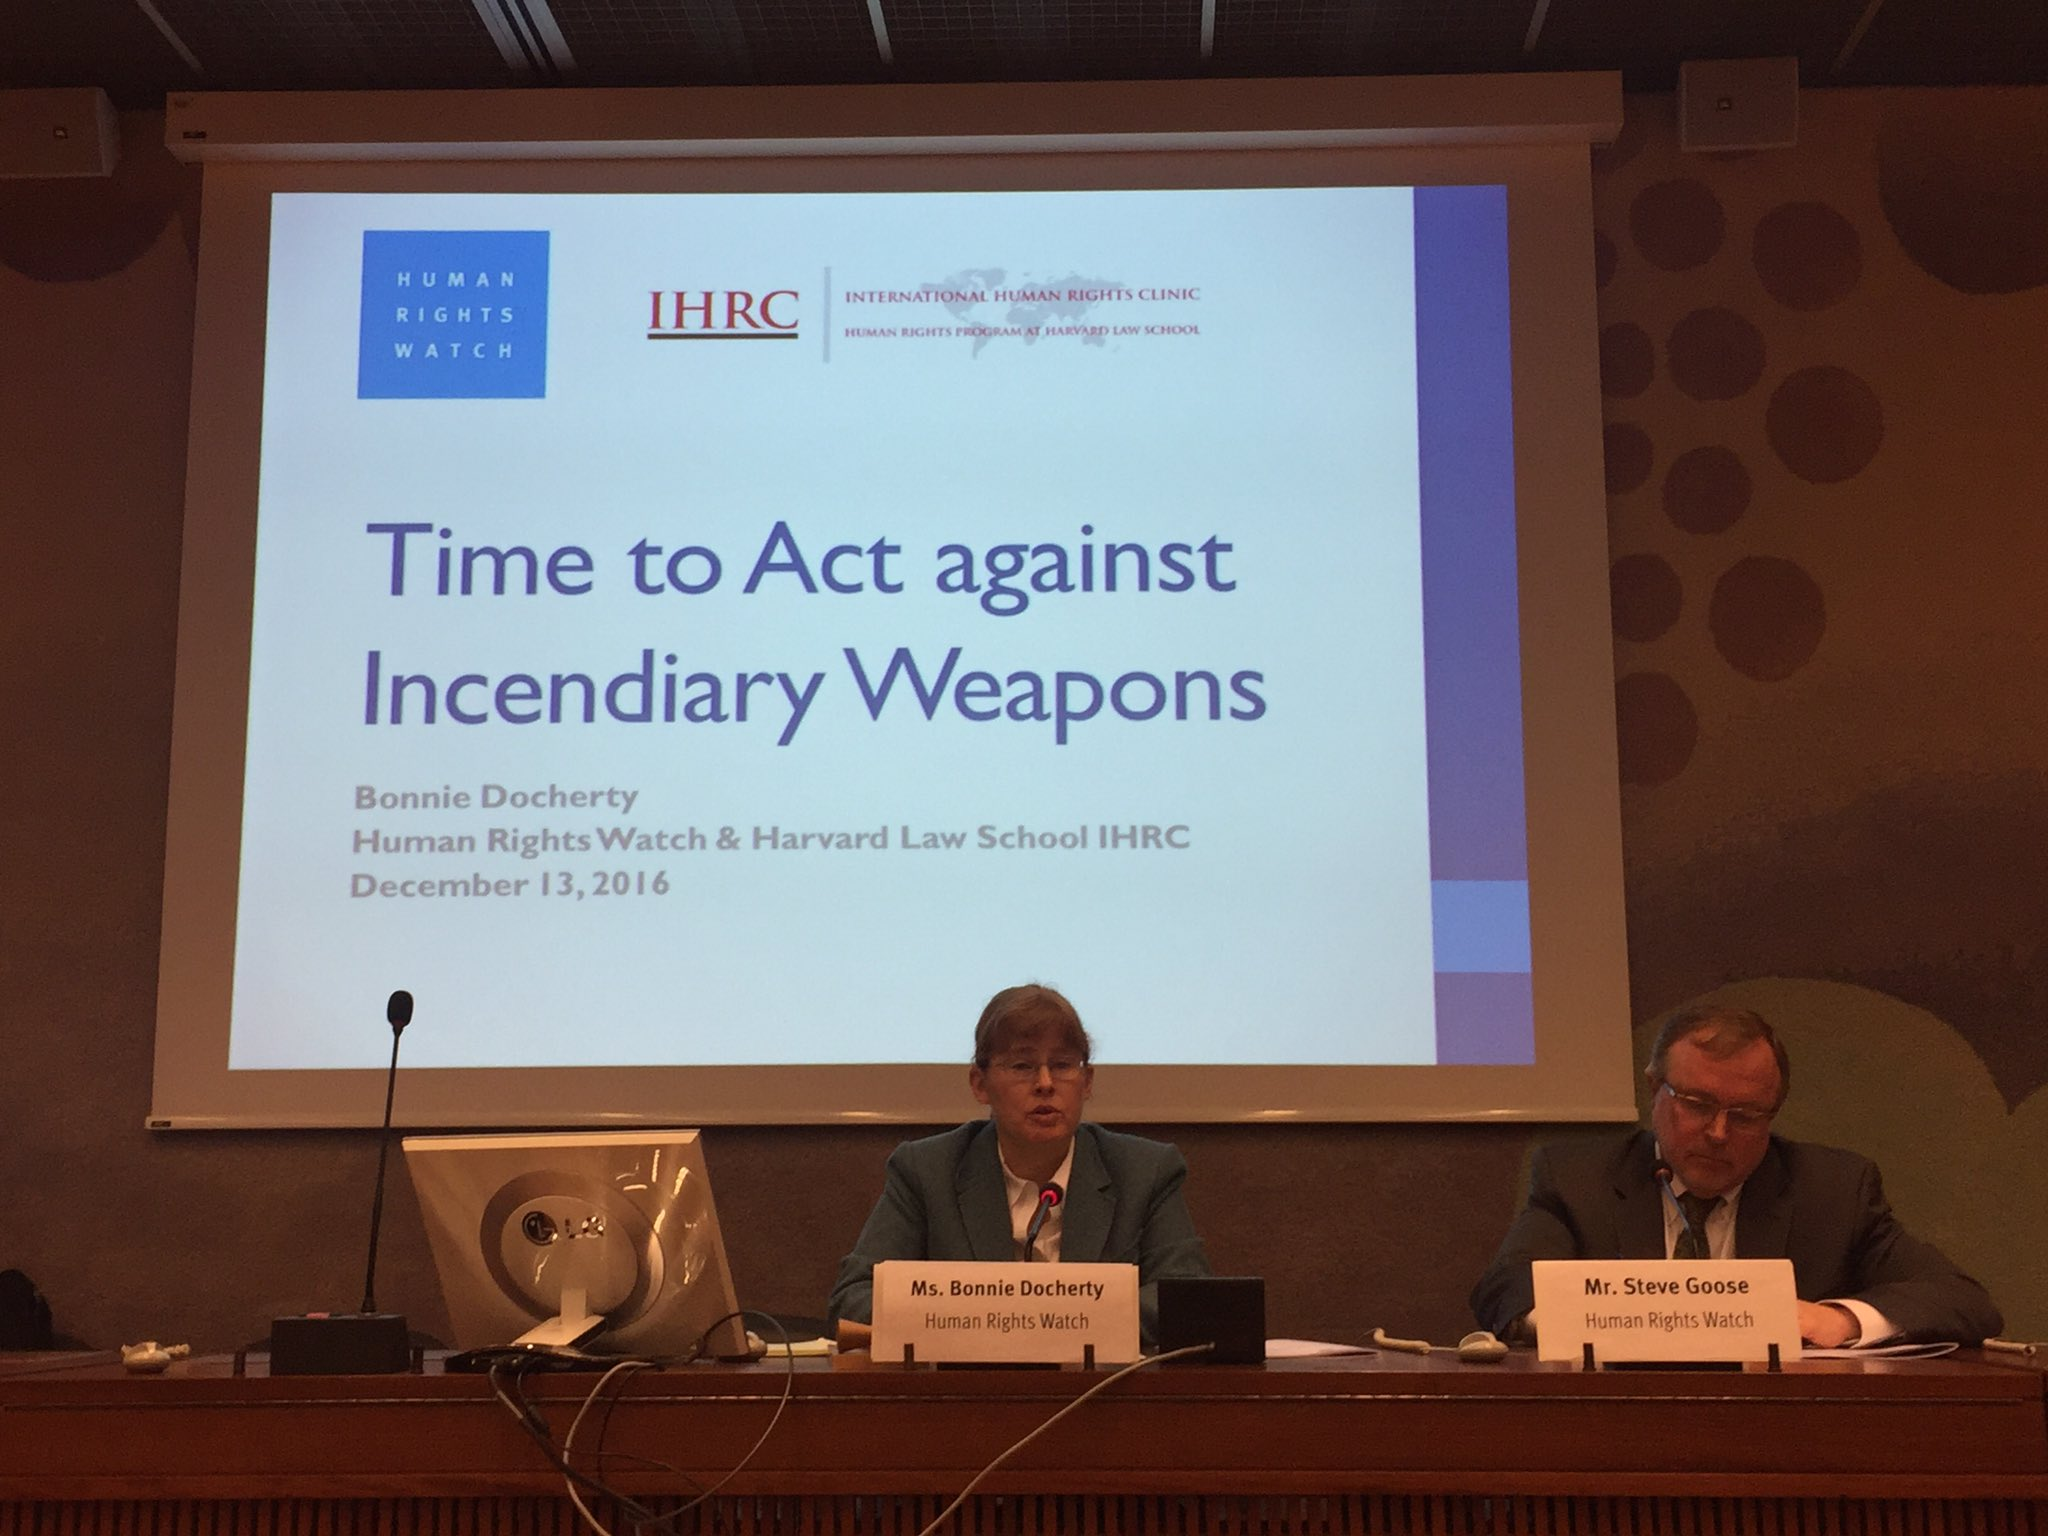 24+ countries, @icrc, NGOs expressed concern on incendiary weapons yesterday, supported calls to revisit #CCWUN Protocol III - build on that https://t.co/QclESonR4q